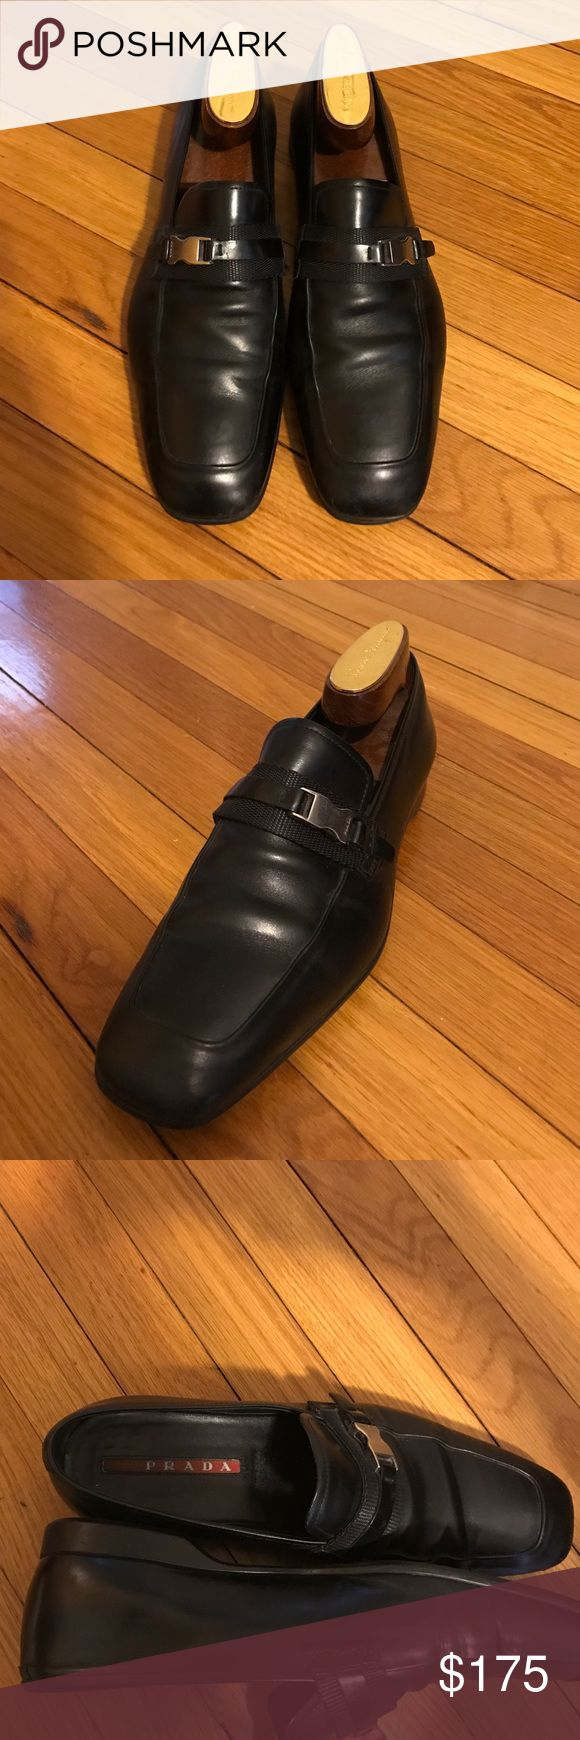 Original men's Prada formal black shoes 1 4D 1600 7.5 great condition worn once for a wedding. Limited edition. Black shoes with Prada logo metal buckle. Get it fast before it's sold! Prada Shoes Loafers & Slip-Ons